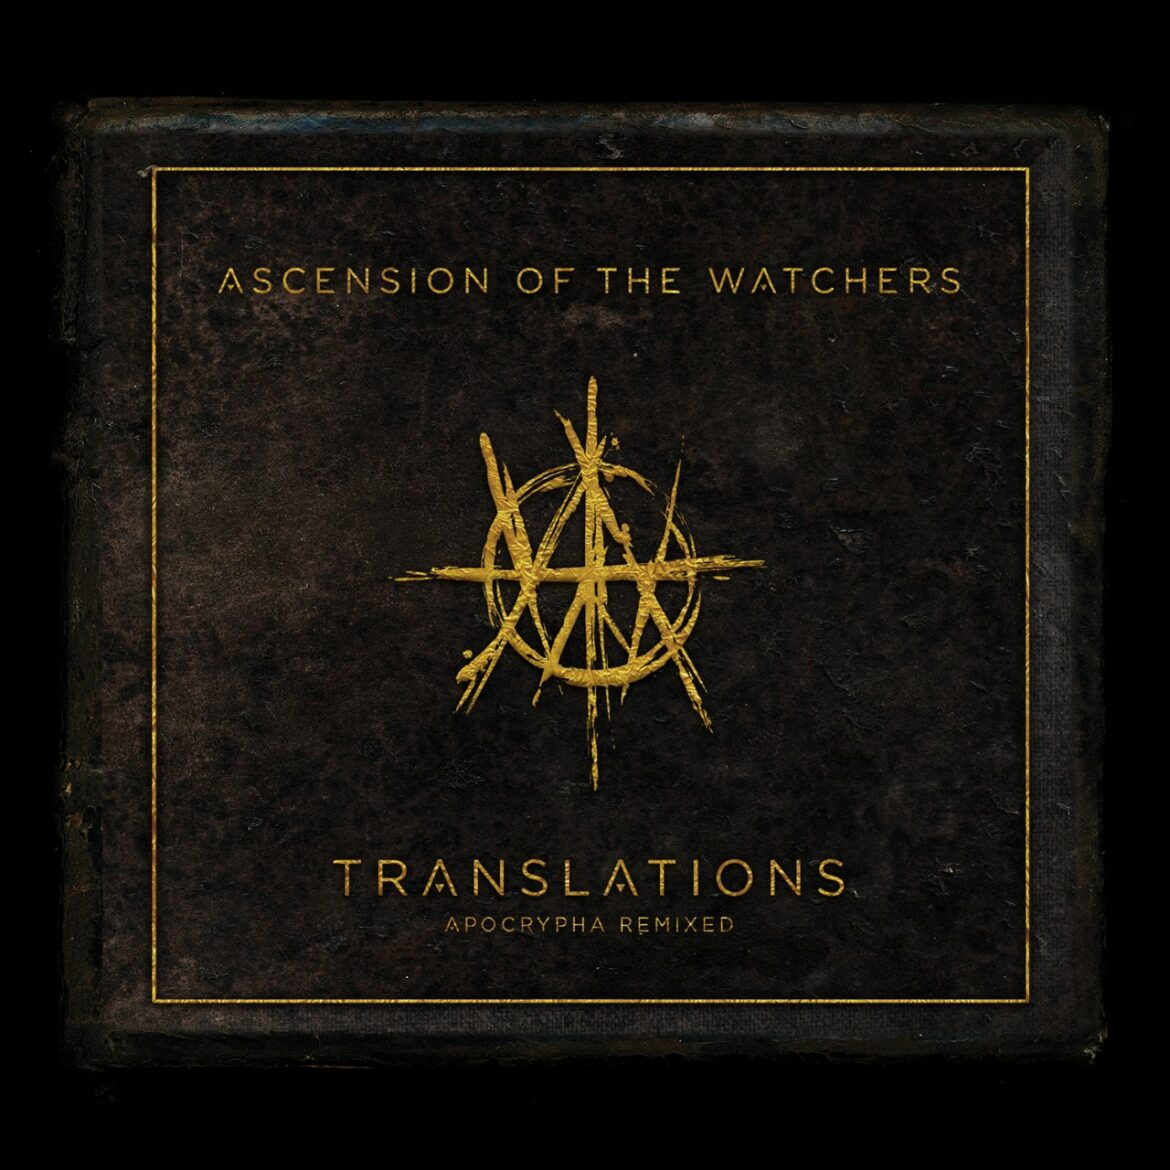 Ascension of the Watchers – Translations: Apocrypha Remixed (Cherry Red)